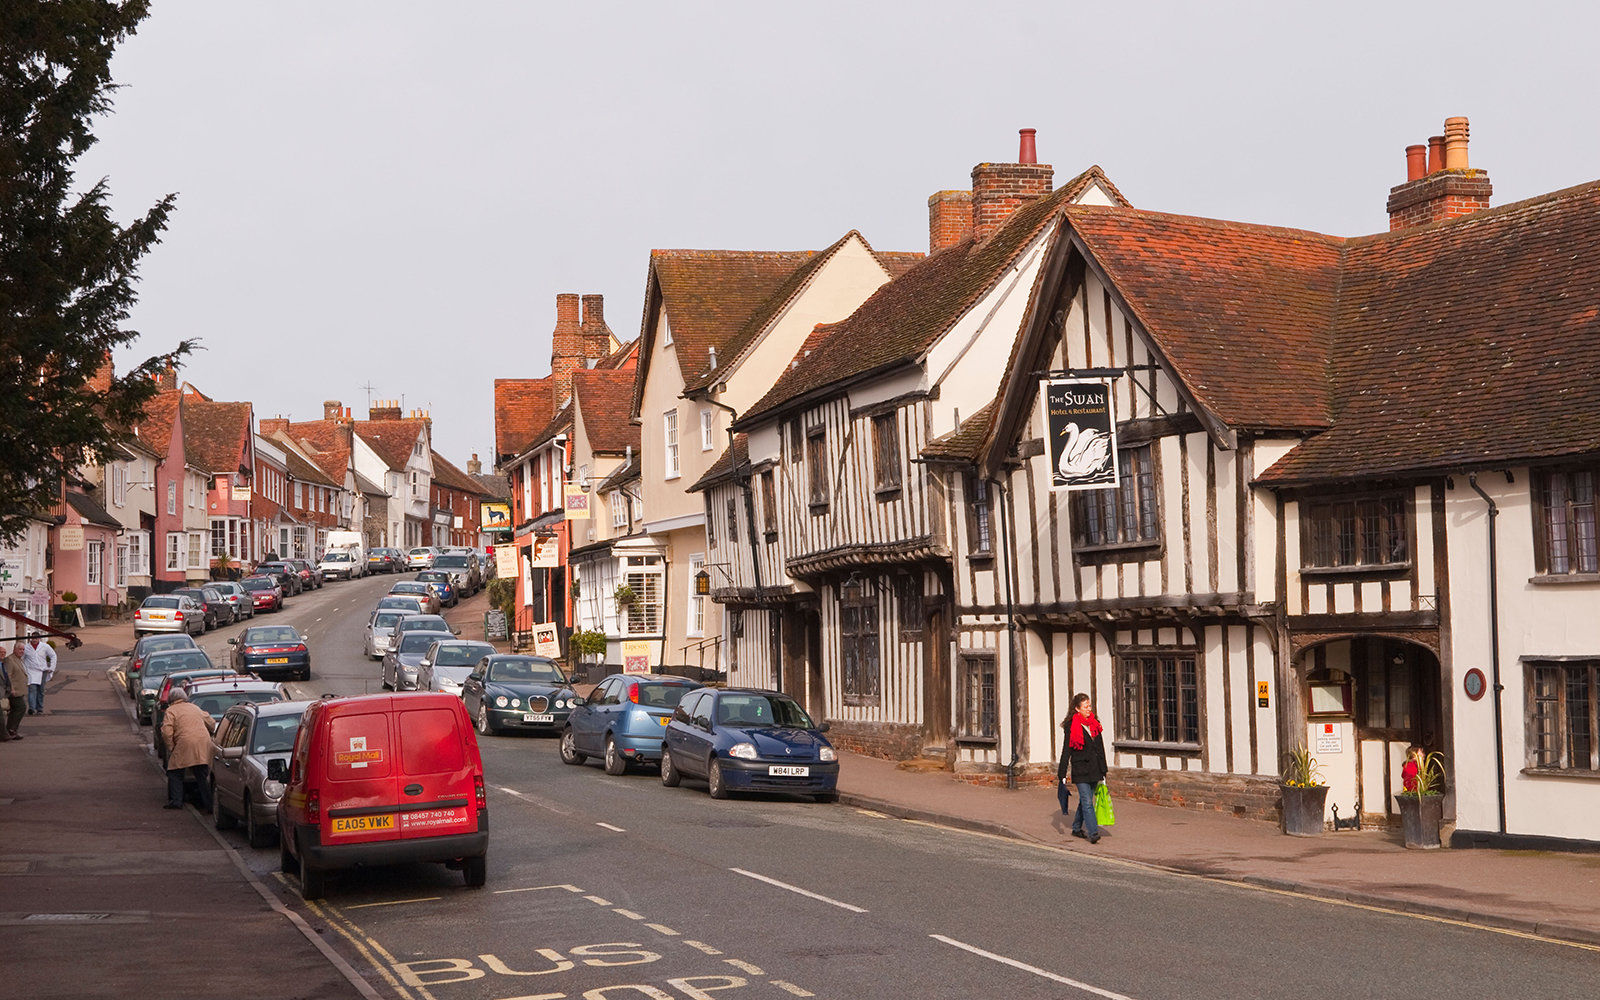 small European town in Lavenham, England